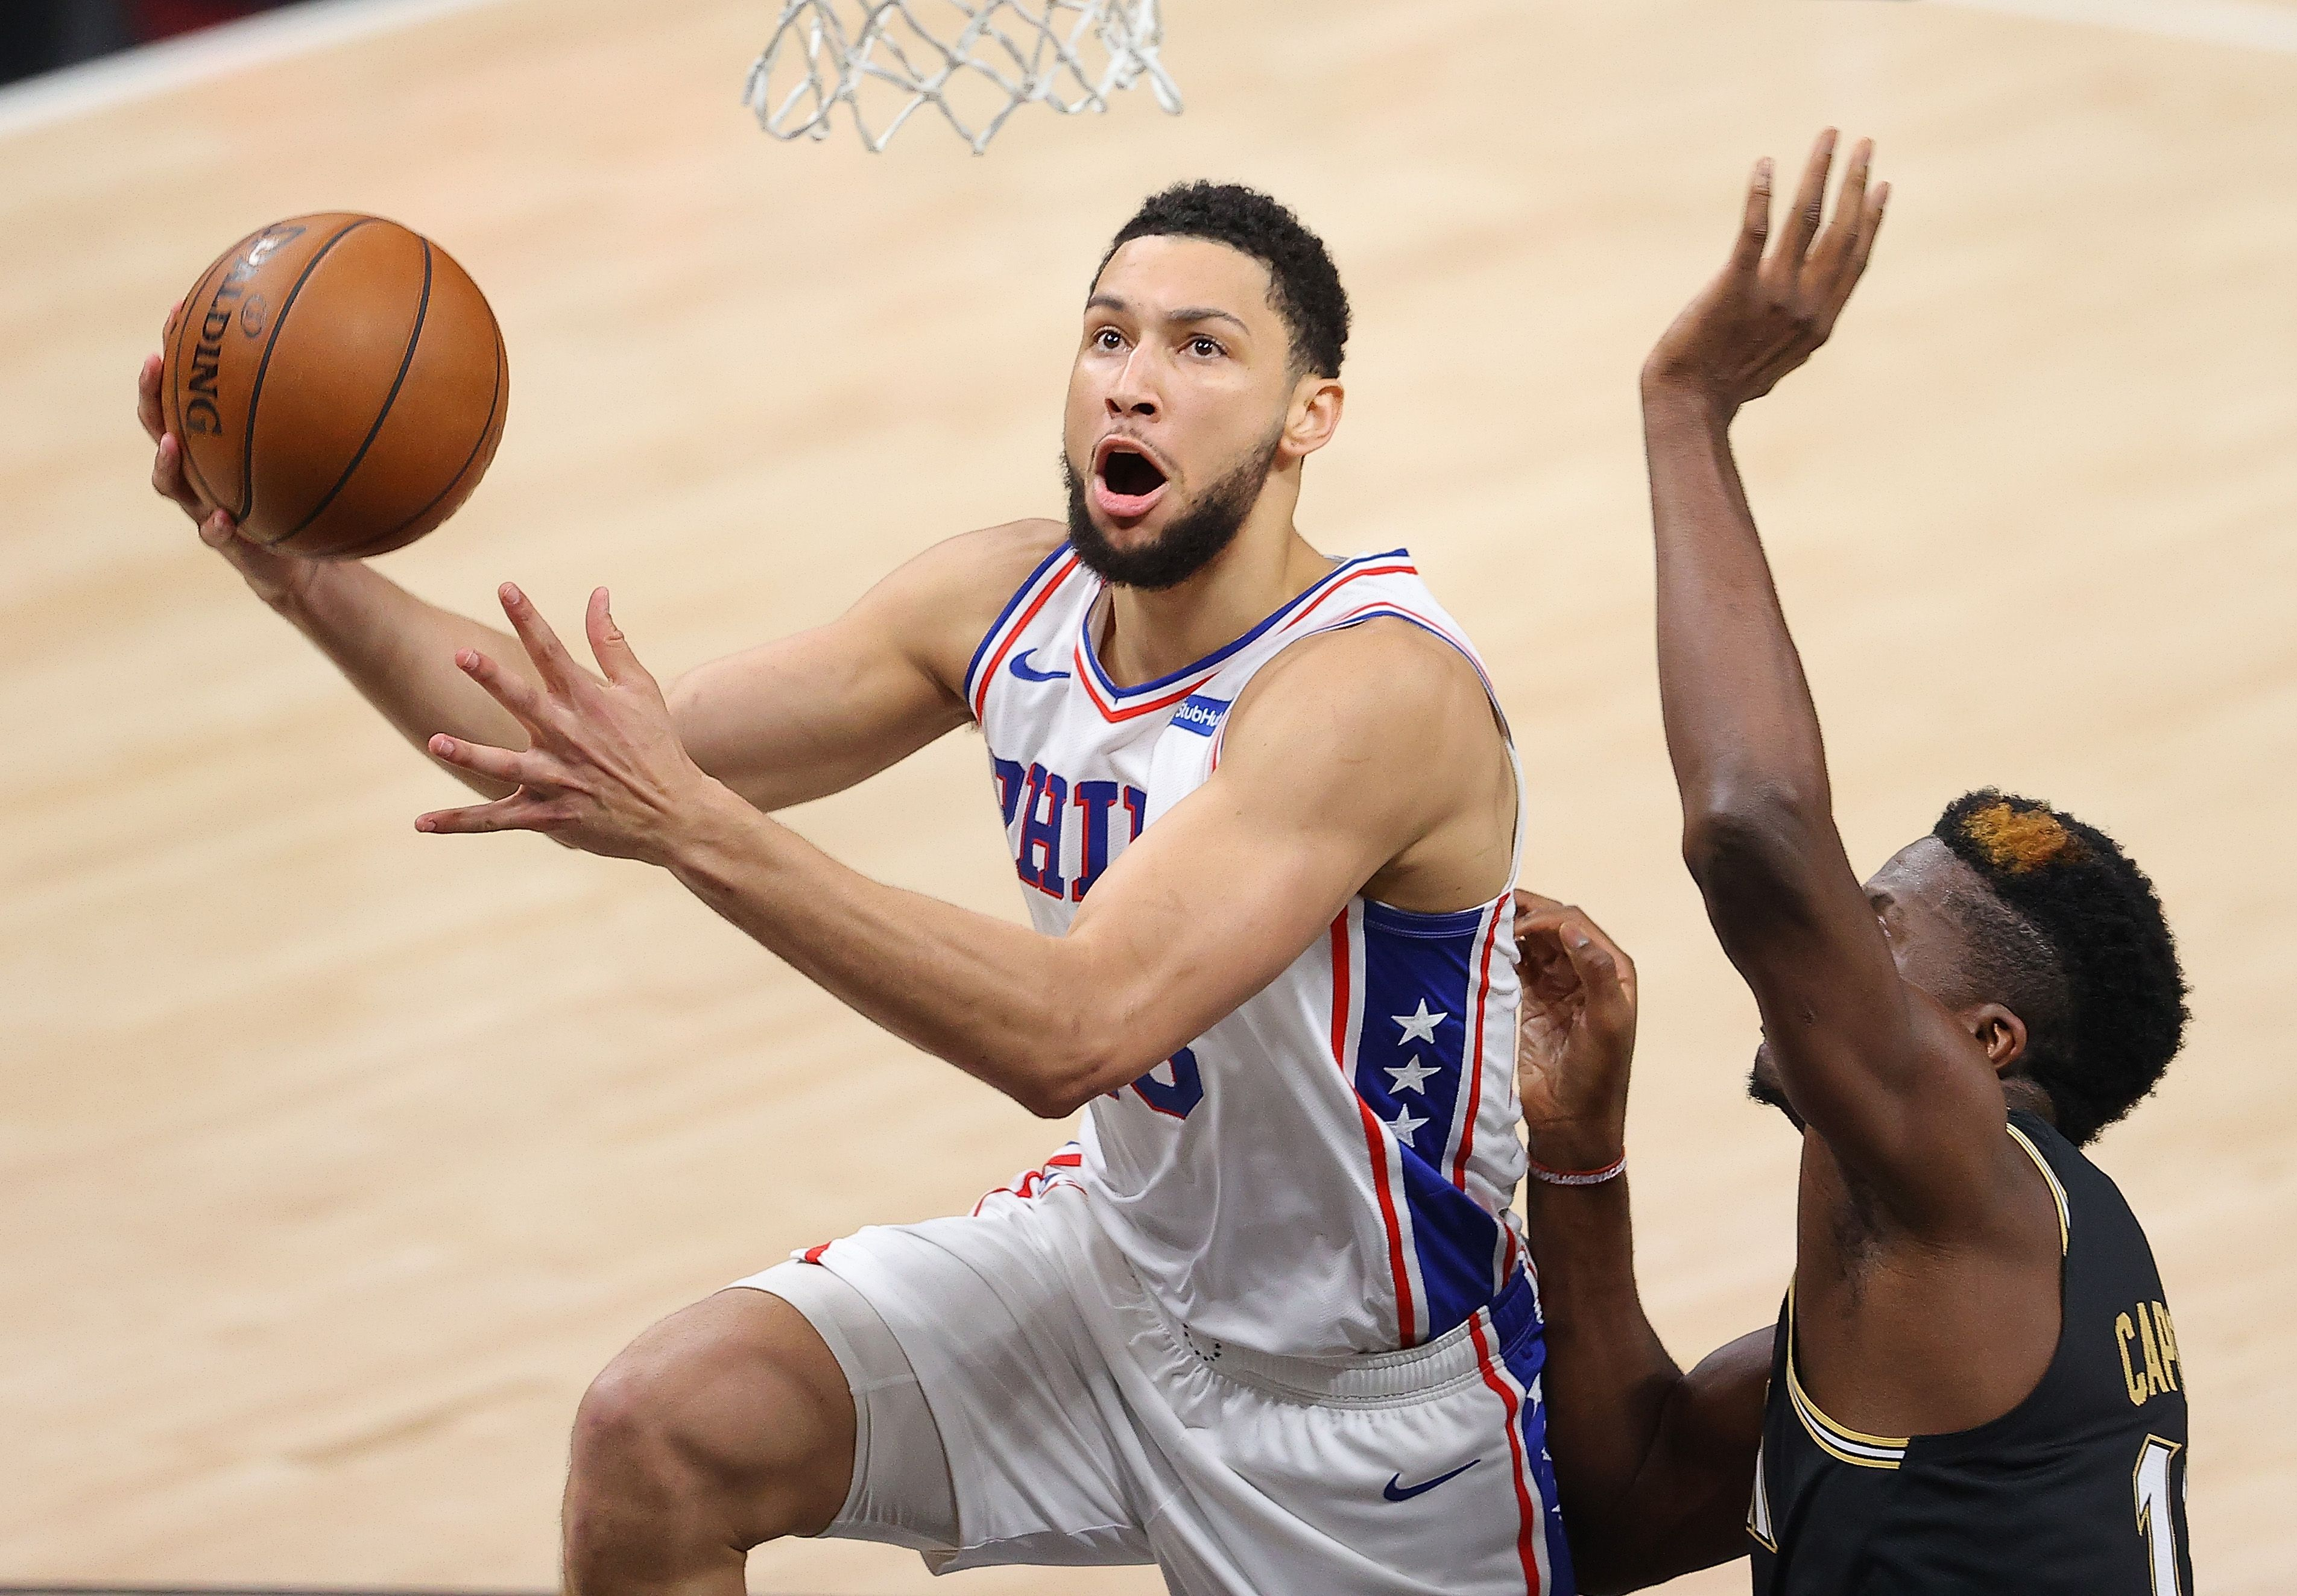 Ben Simmons trying to score against Clint Capela